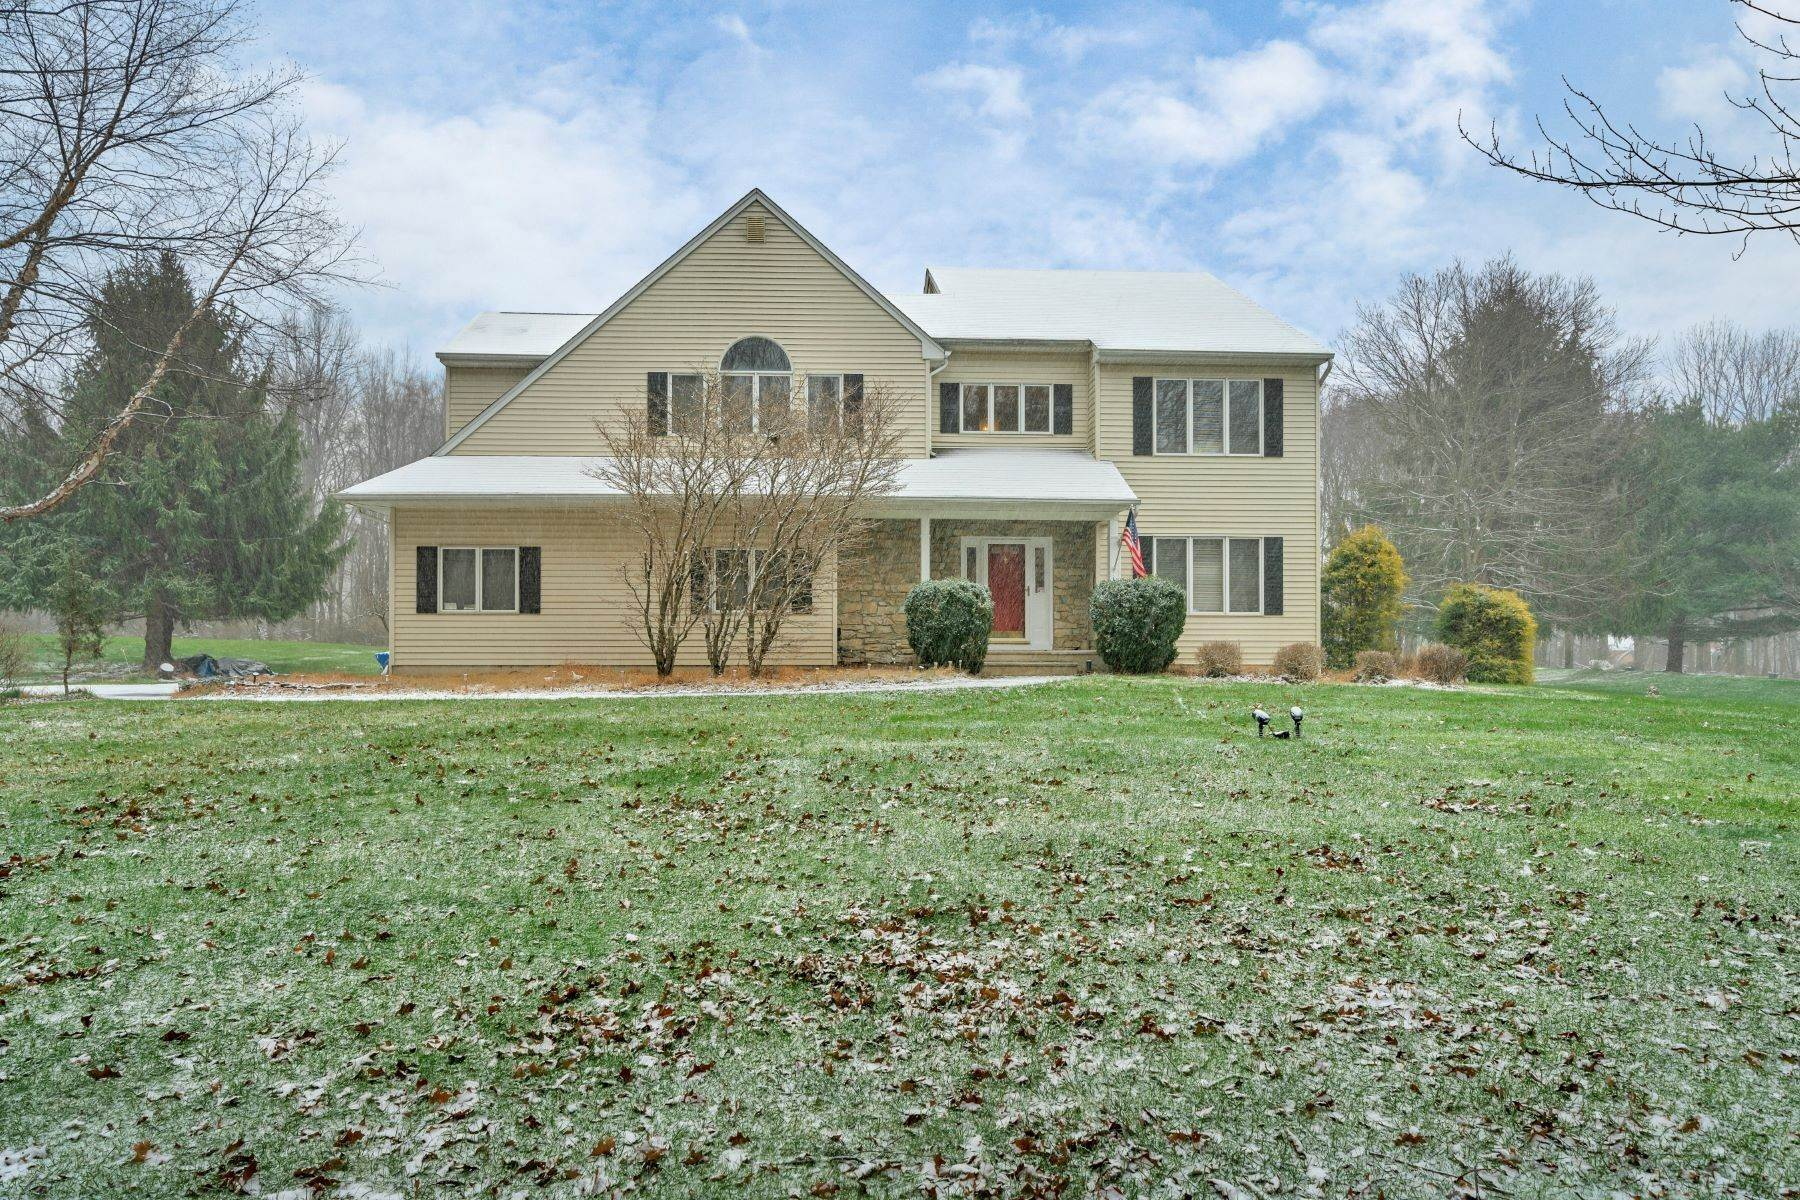 Single Family Homes for Sale at Welcoming Colonial Home 4 Thomas Farm Lane Long Valley, New Jersey 07853 United States